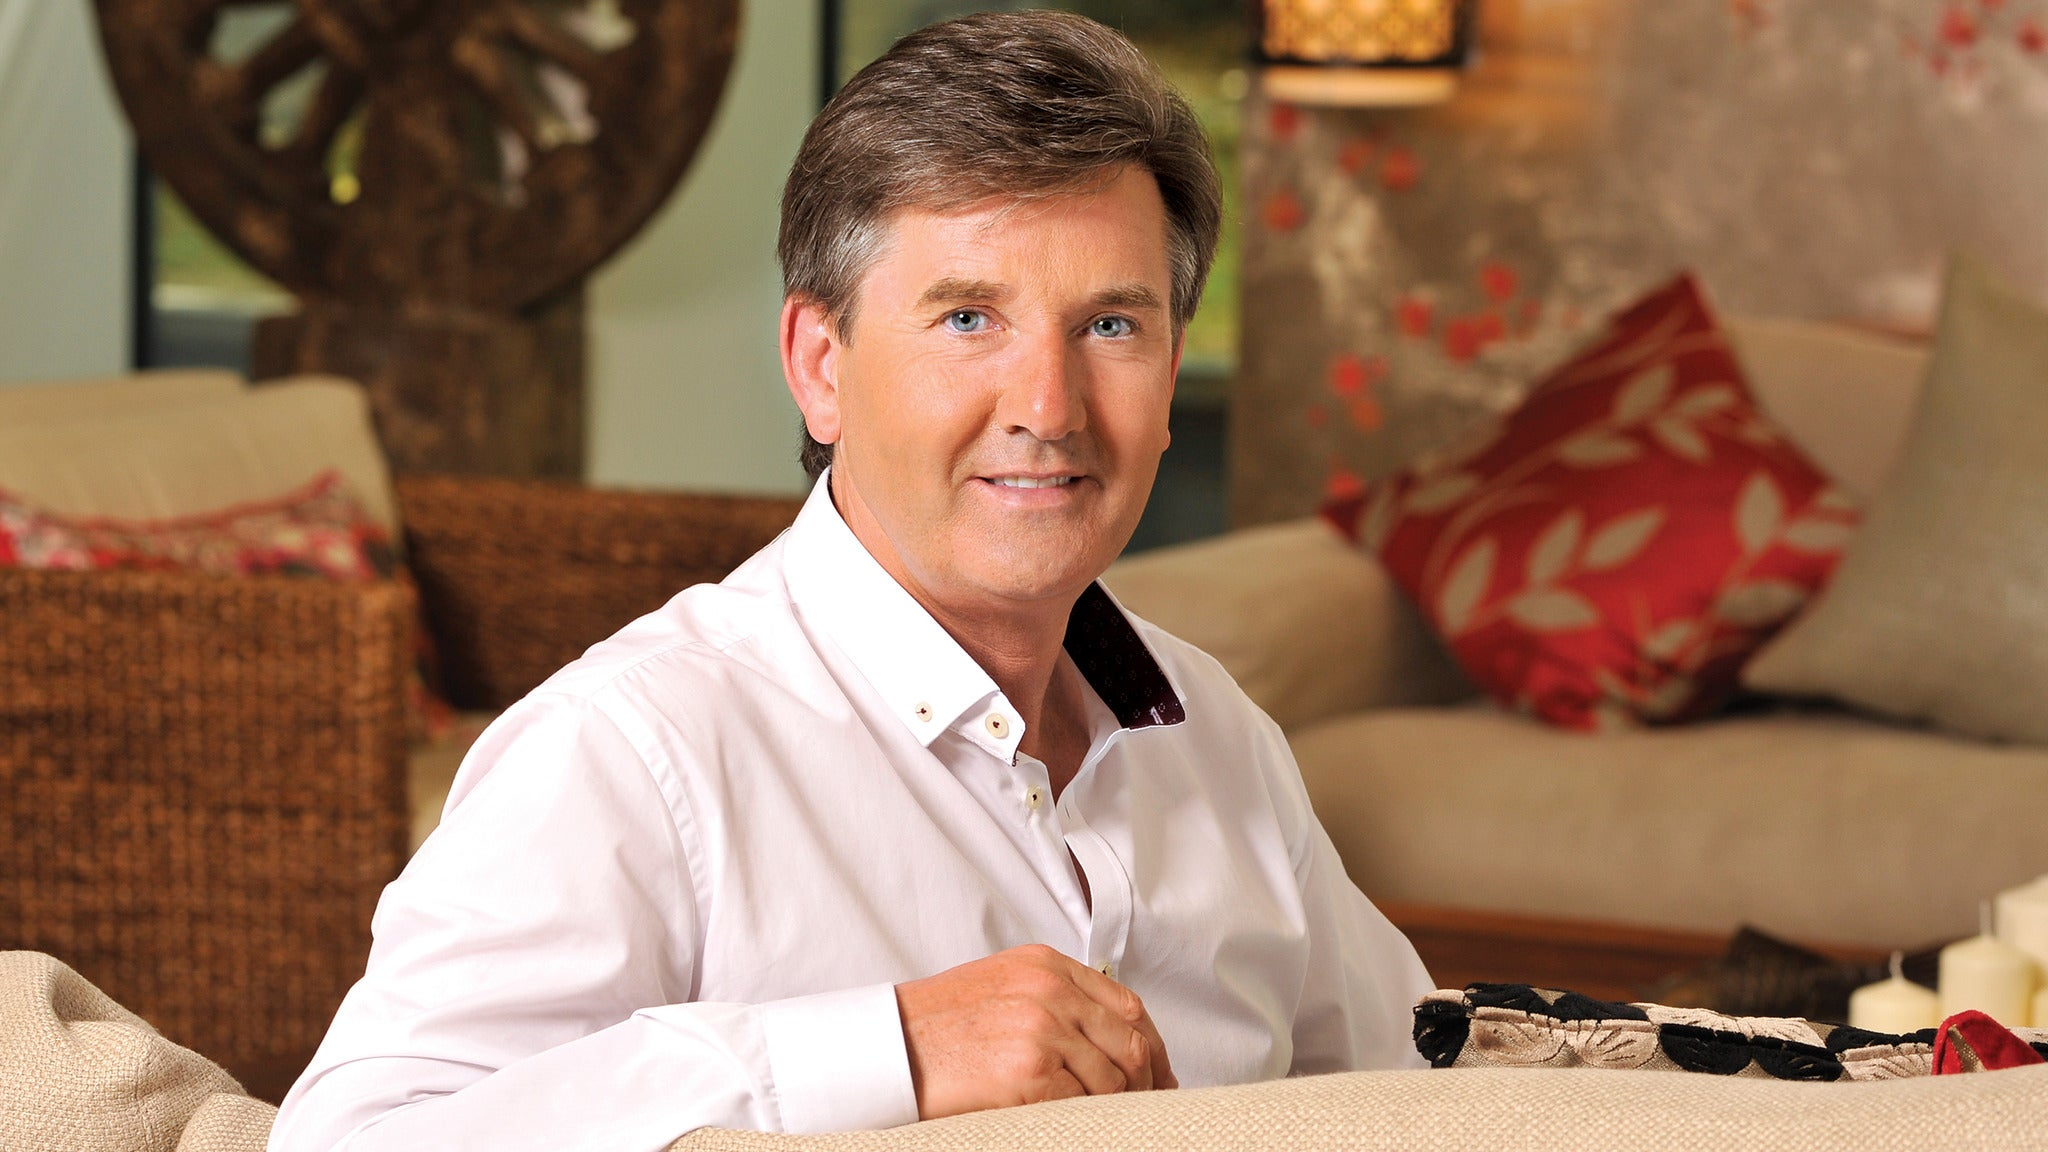 Daniel O'Donnell at iWireless Center